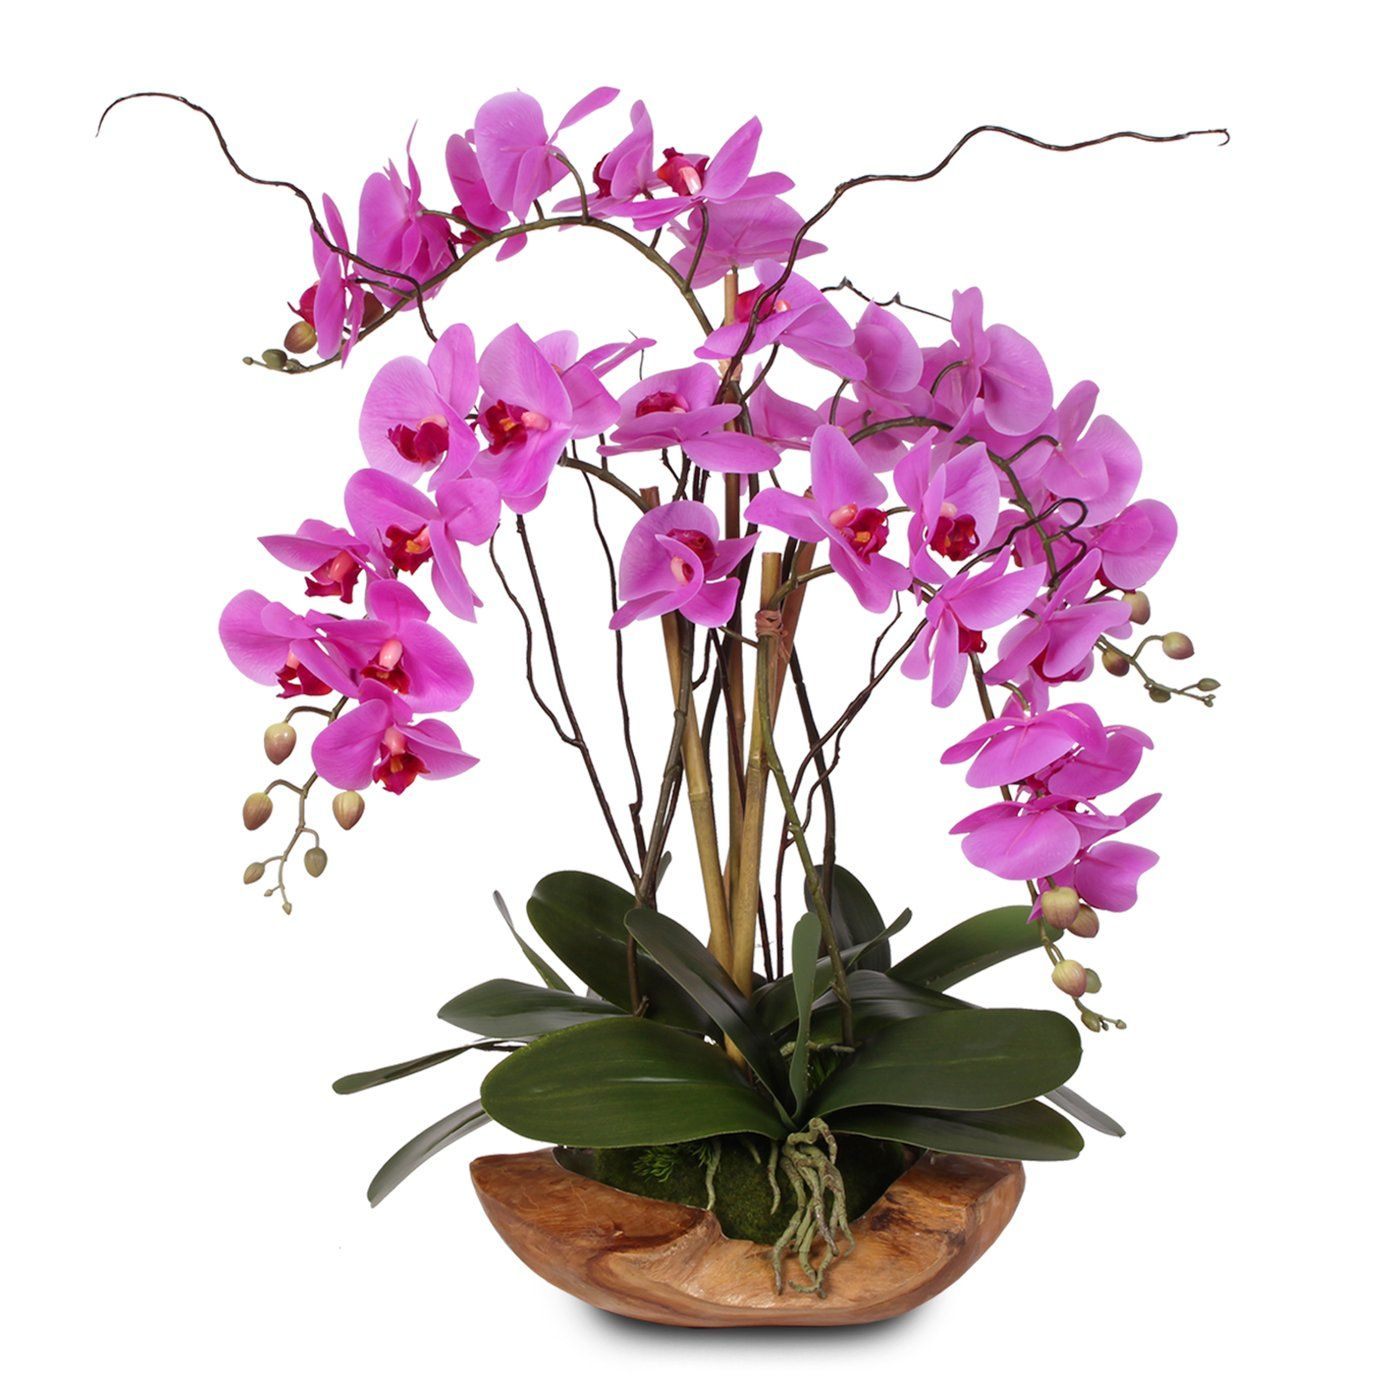 Real Touch 5 Stem Phalaenopsis Silk Orchids In A Natural Teakwood Bowl 59a In 2020 Orchid Arrangements Orchid Flower Arrangements Silk Orchids Arrangements